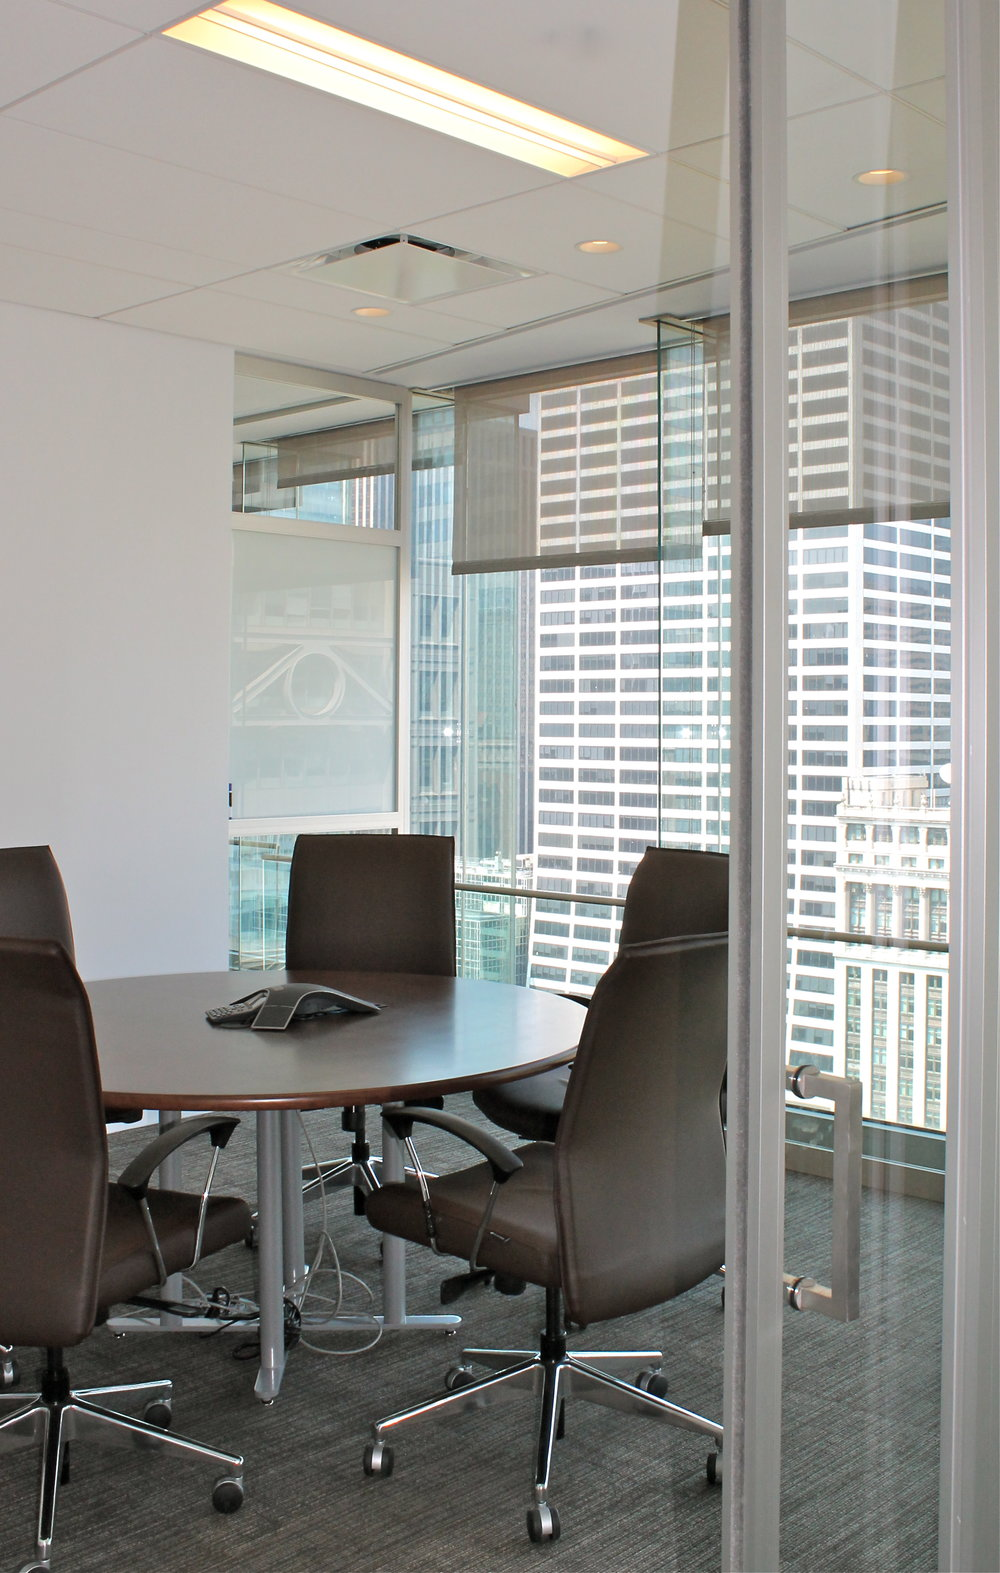 Conference room overlooking the street with floor to ceiling windows in Wood Mackenzie, an energy research and consultancy business. MEP designs by 2LS Consulting Engineering.